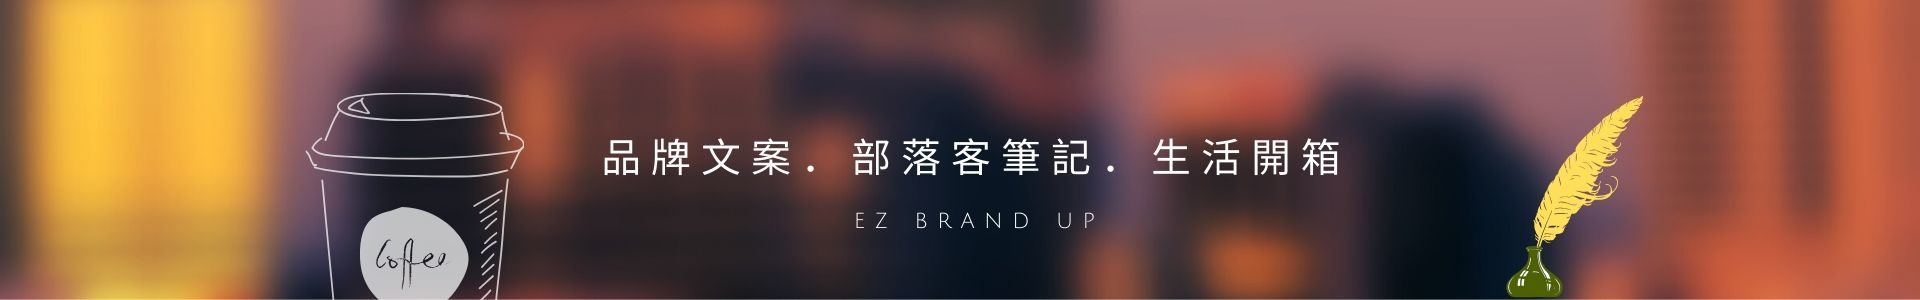 EZ Brand Up Header Banner 2020-1.3v